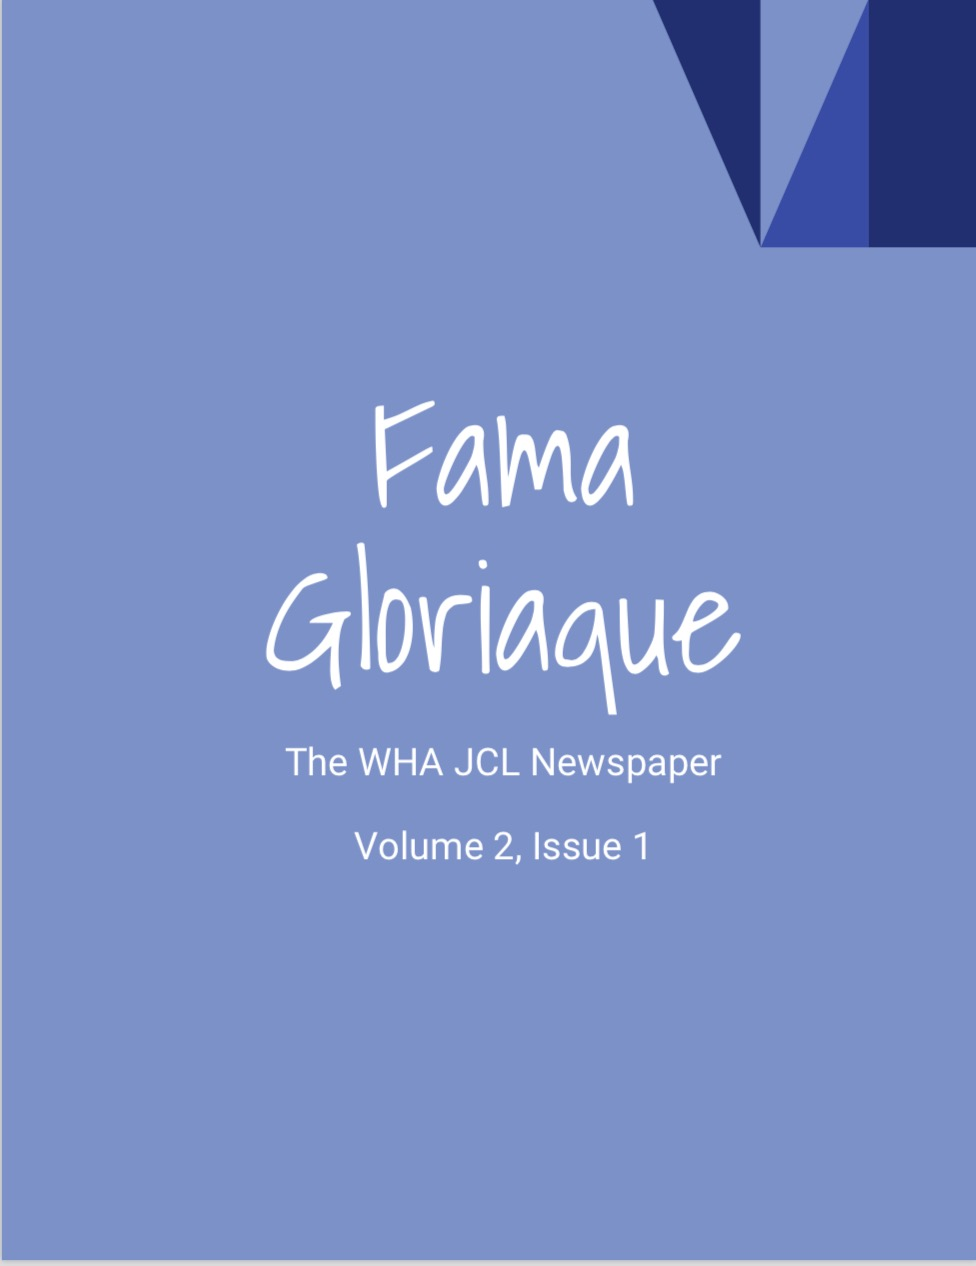 Cover of the WHA JCL newspaper, a publication run by our online homeschooling students